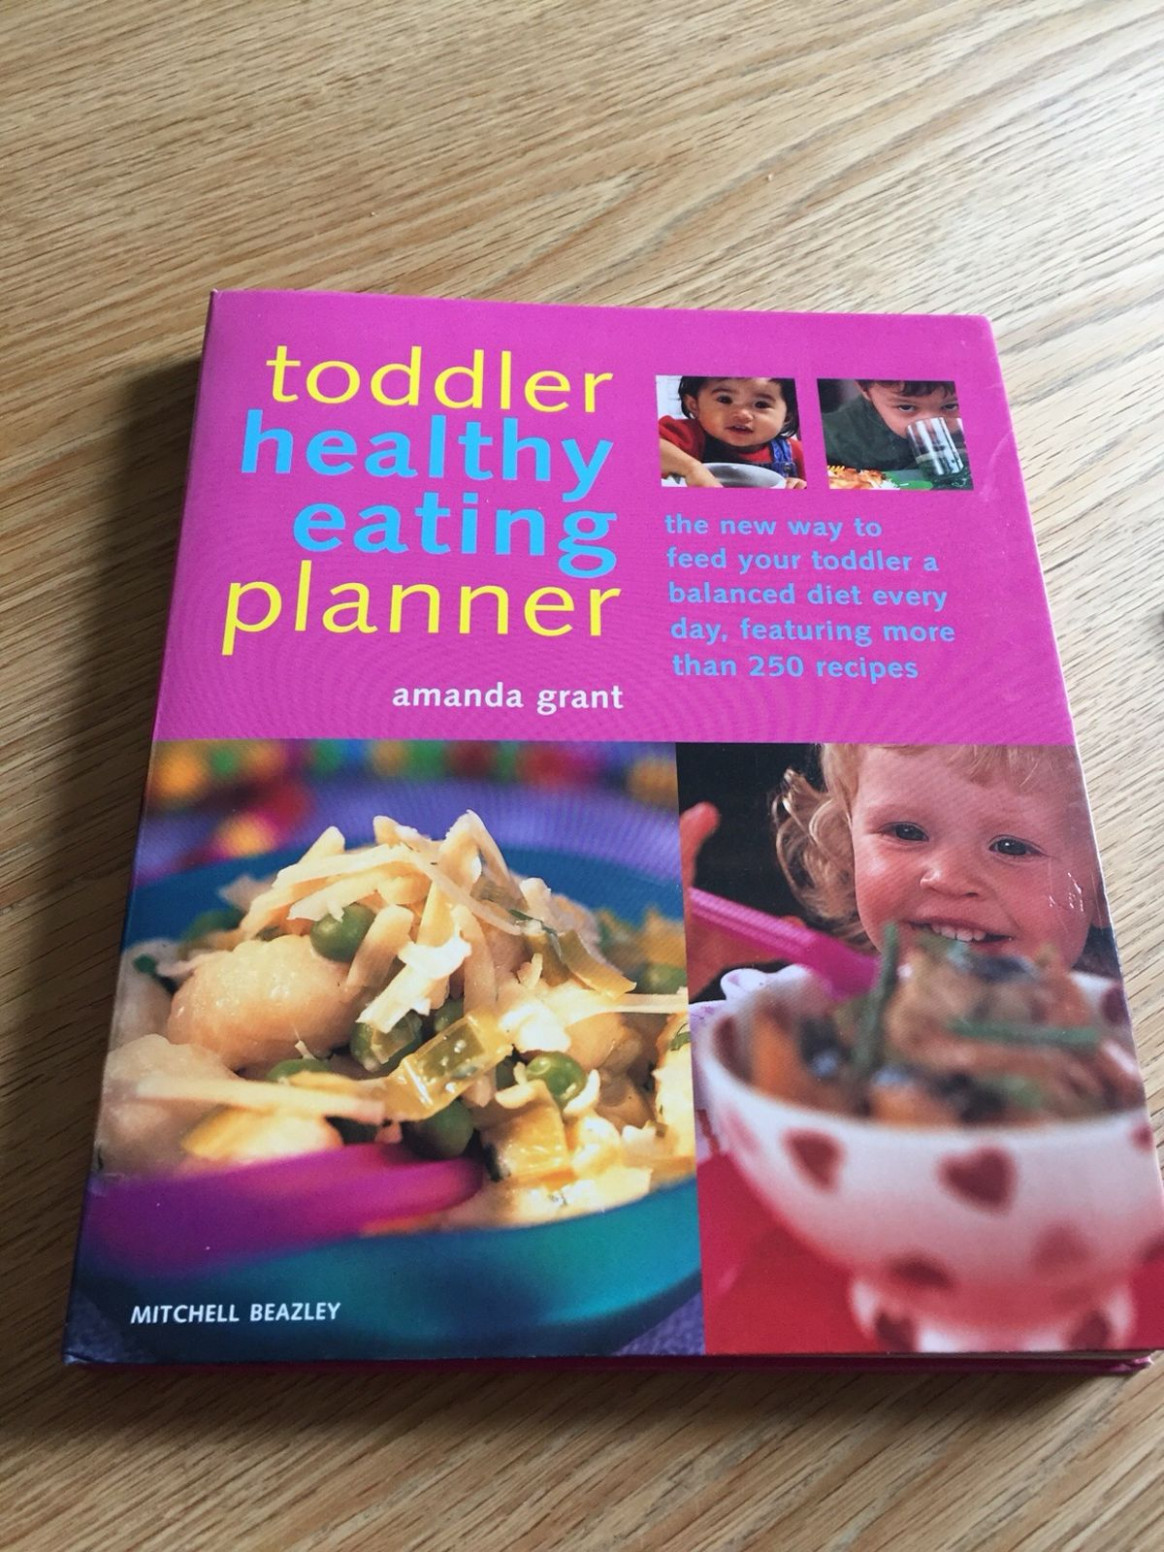 Toddler healthy eating planner book - healthy recipes book